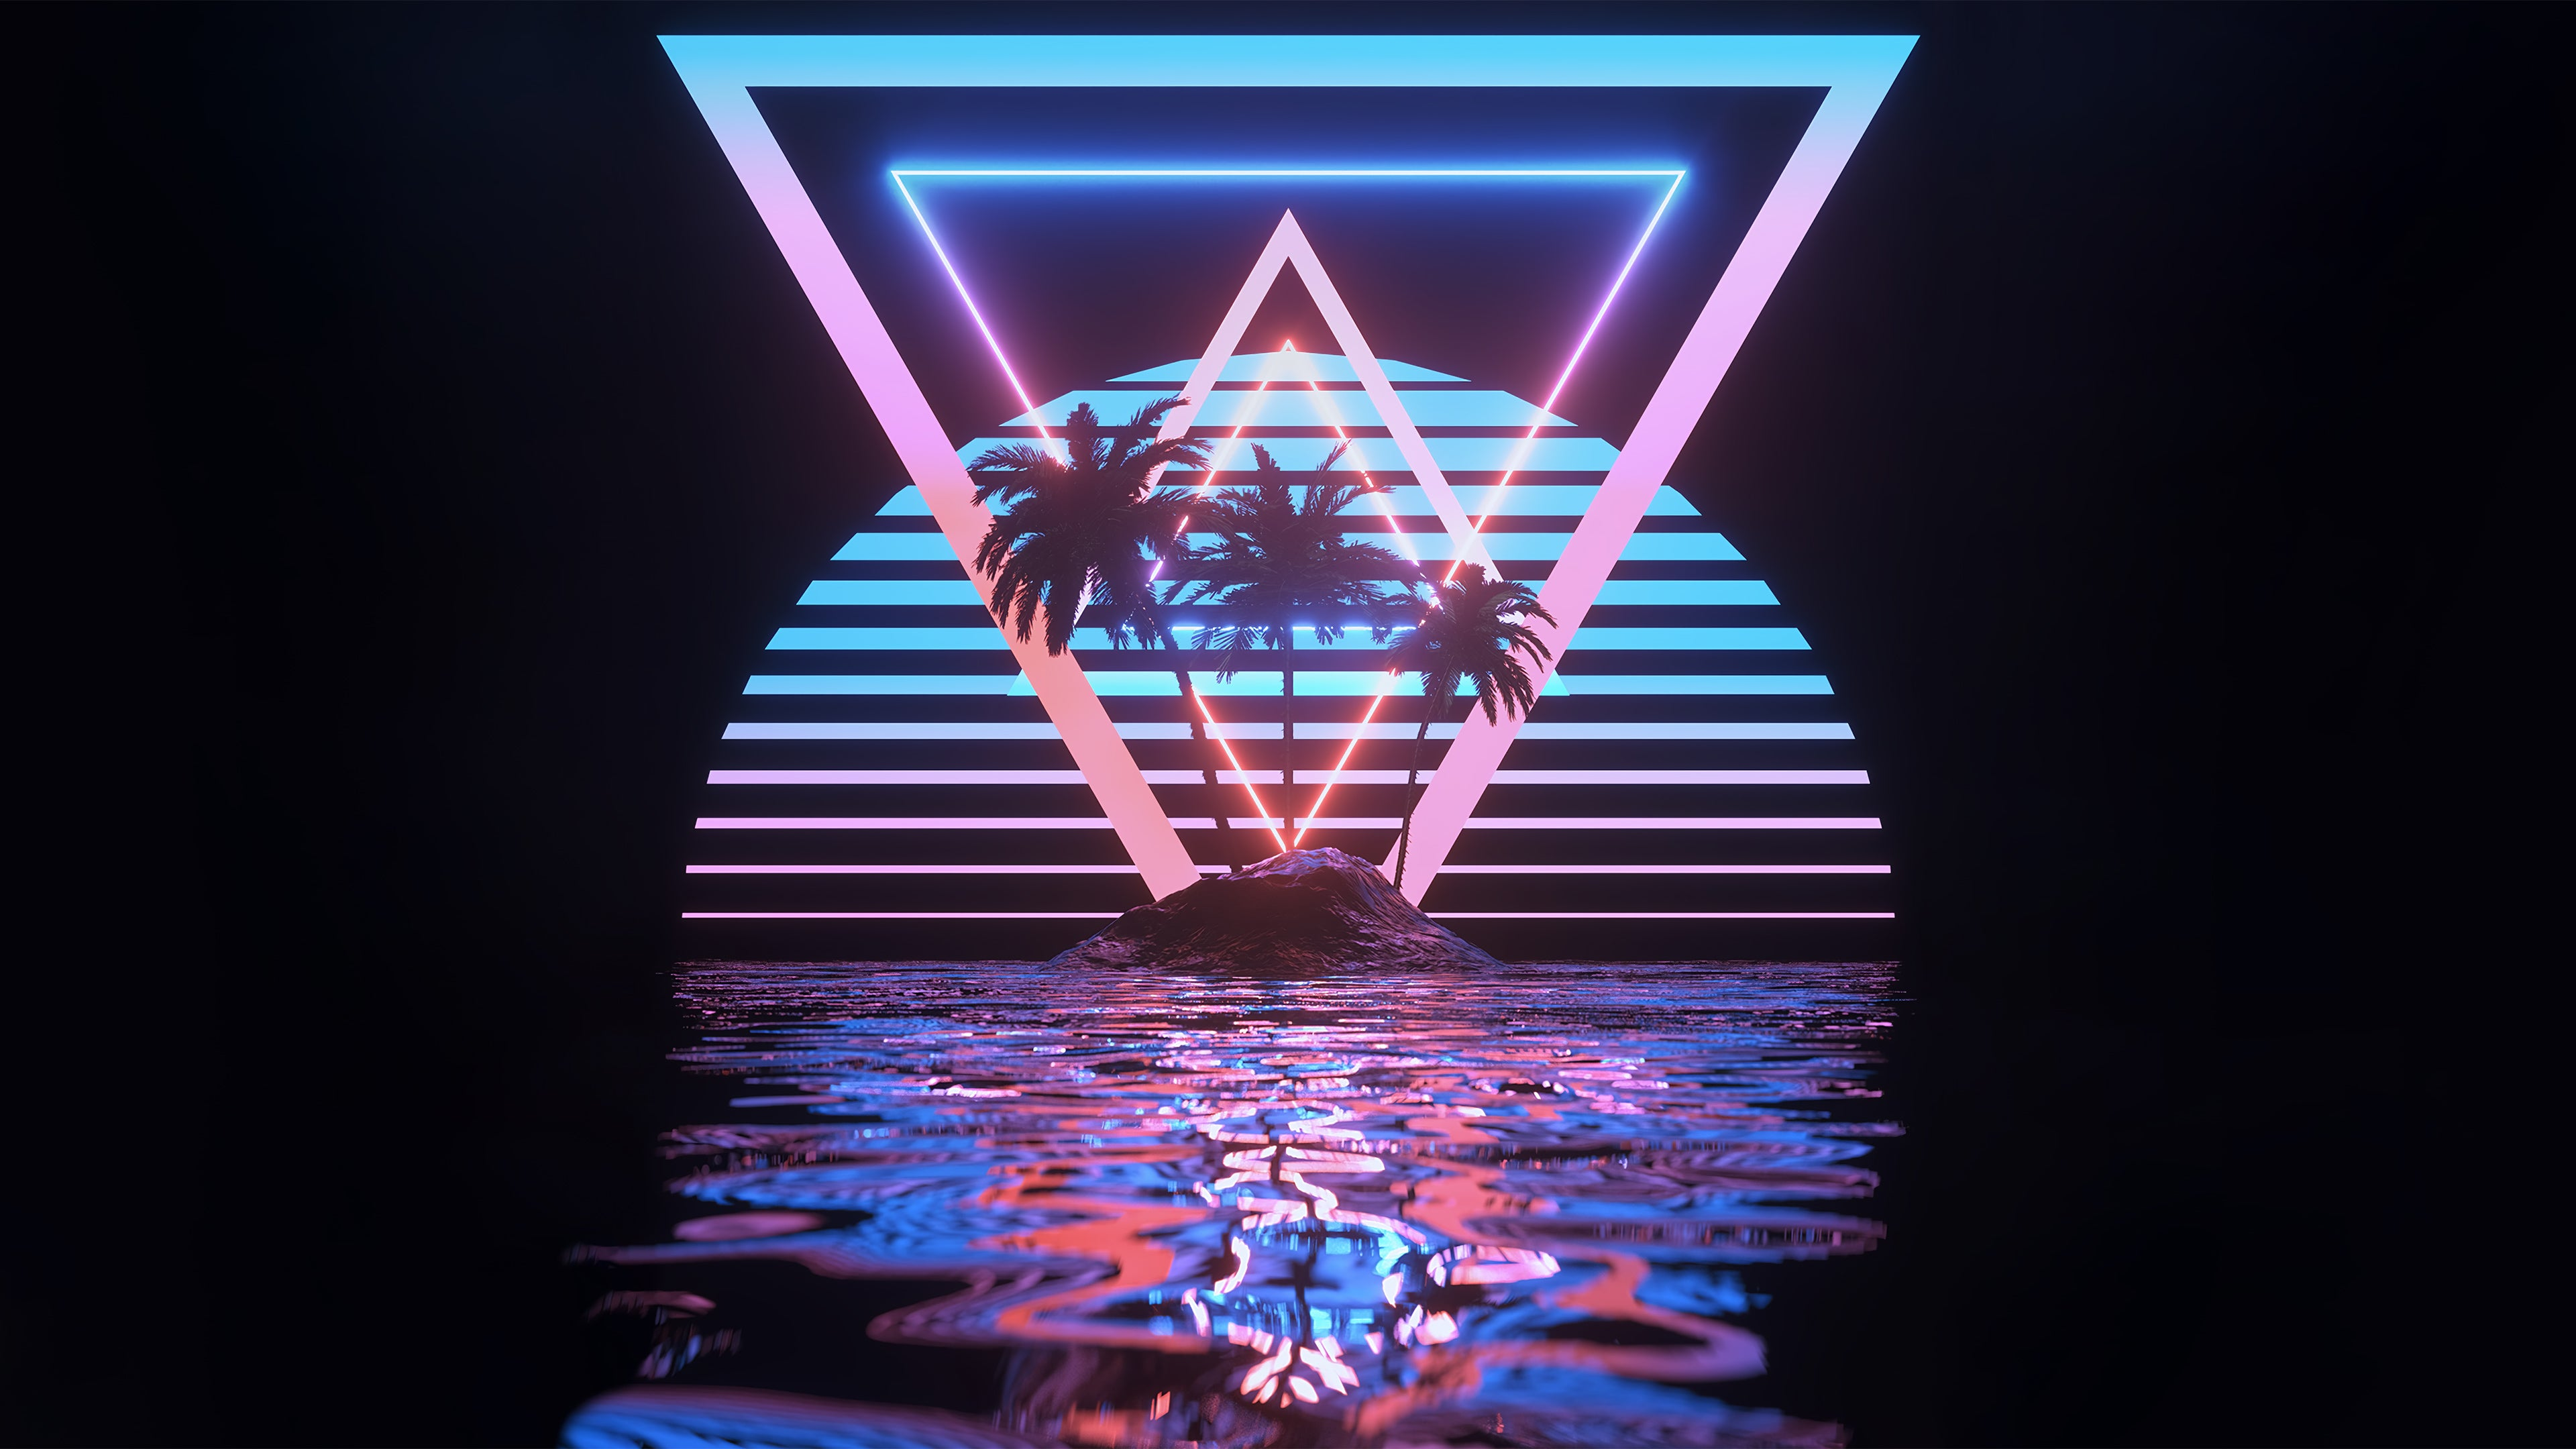 Outrun 4K wallpapers for your desktop or mobile screen ...